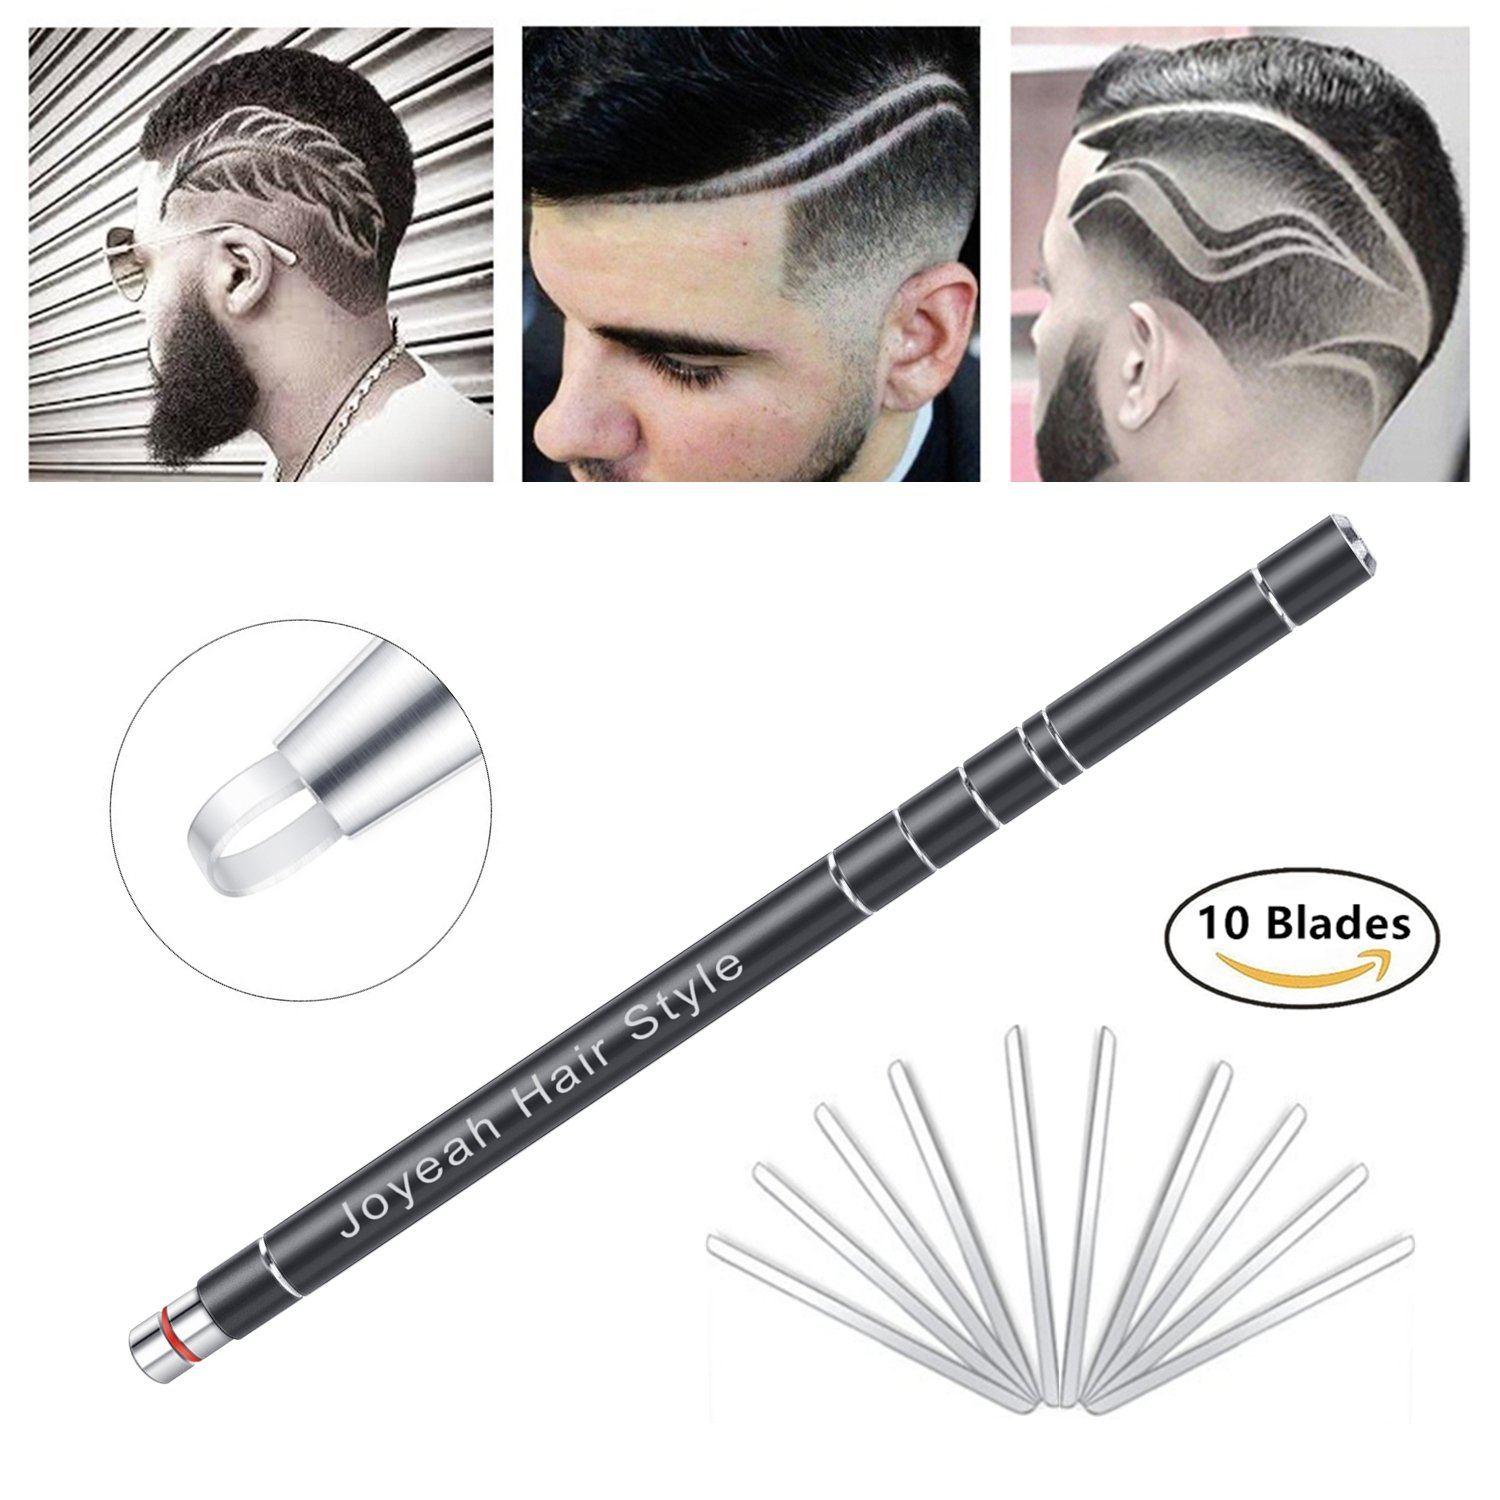 Graff etch hair pattern pencils 8 piece set for Razor pen for hair tattoo